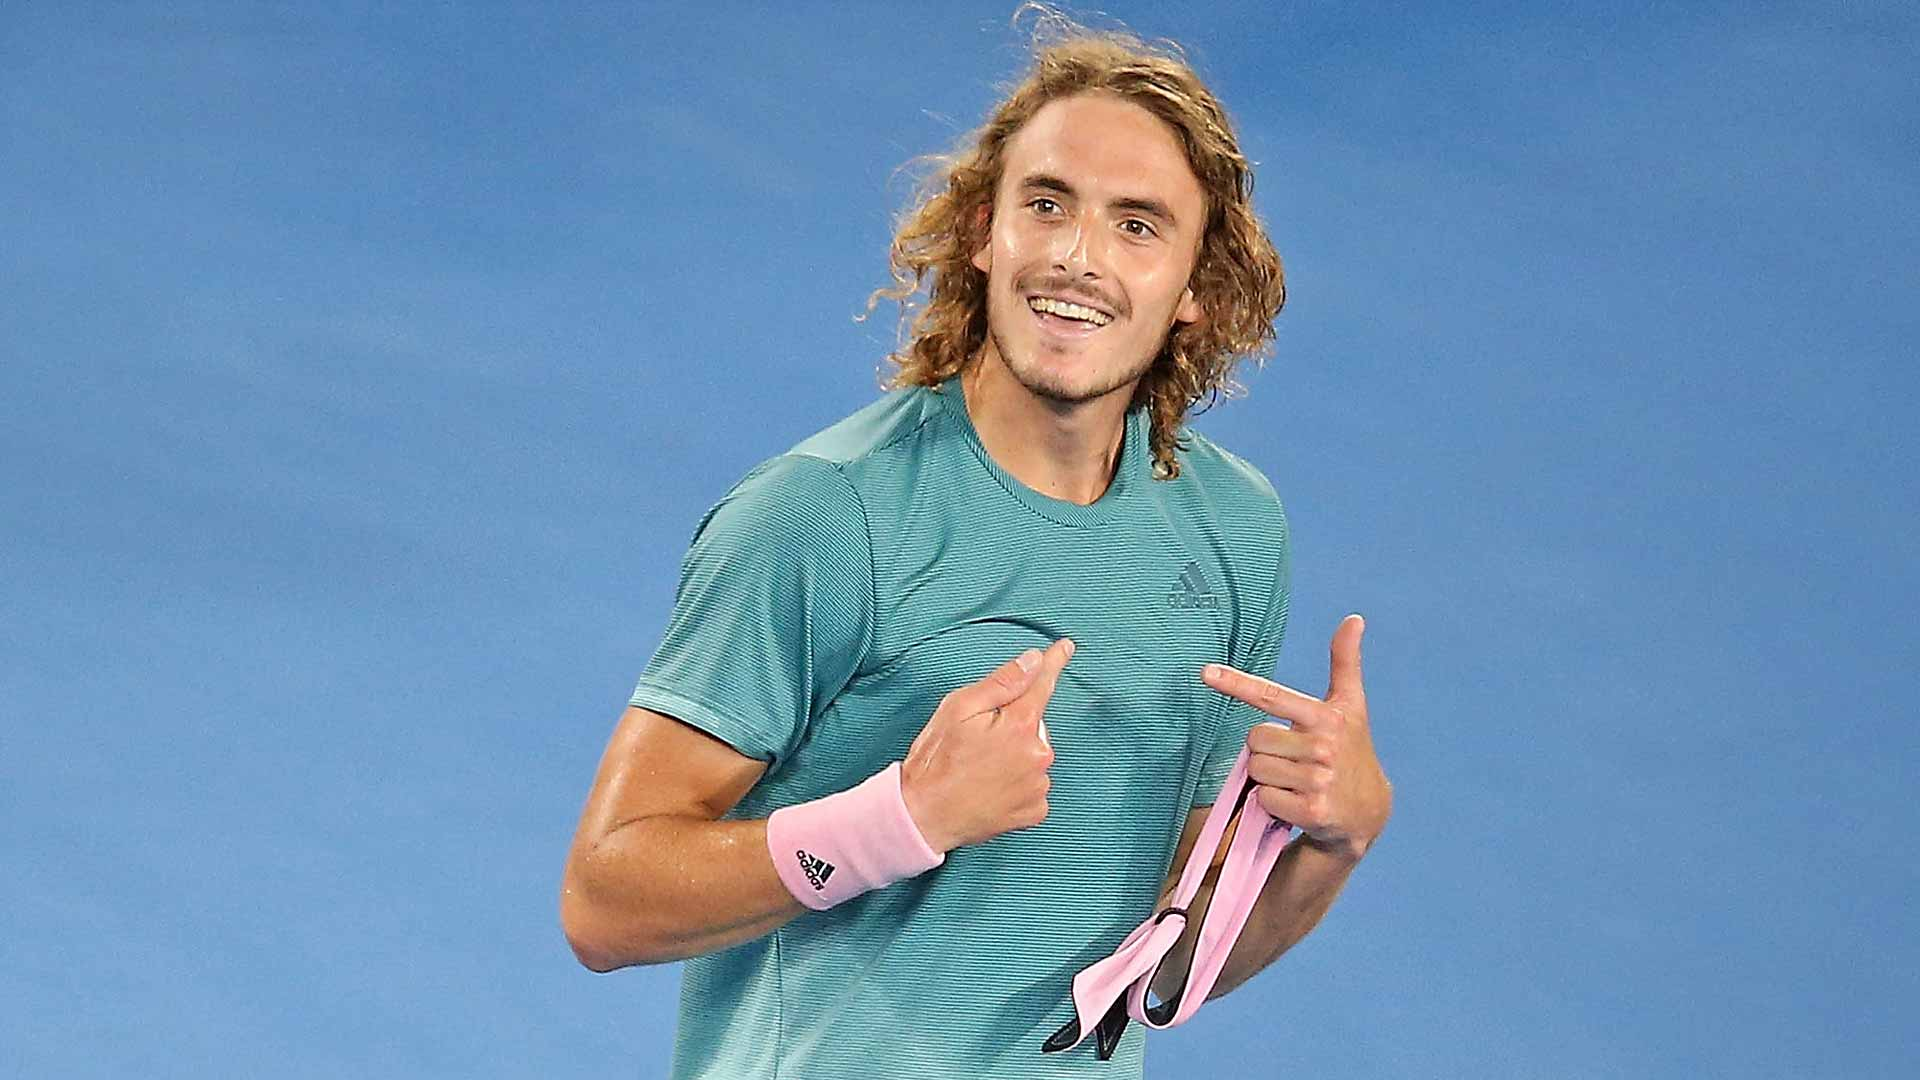 Roger Federer Stefanos Tsitsipas Comprised One Of Best Rivalries Of 2019 Atp Tour Season Atp Tour Tennis